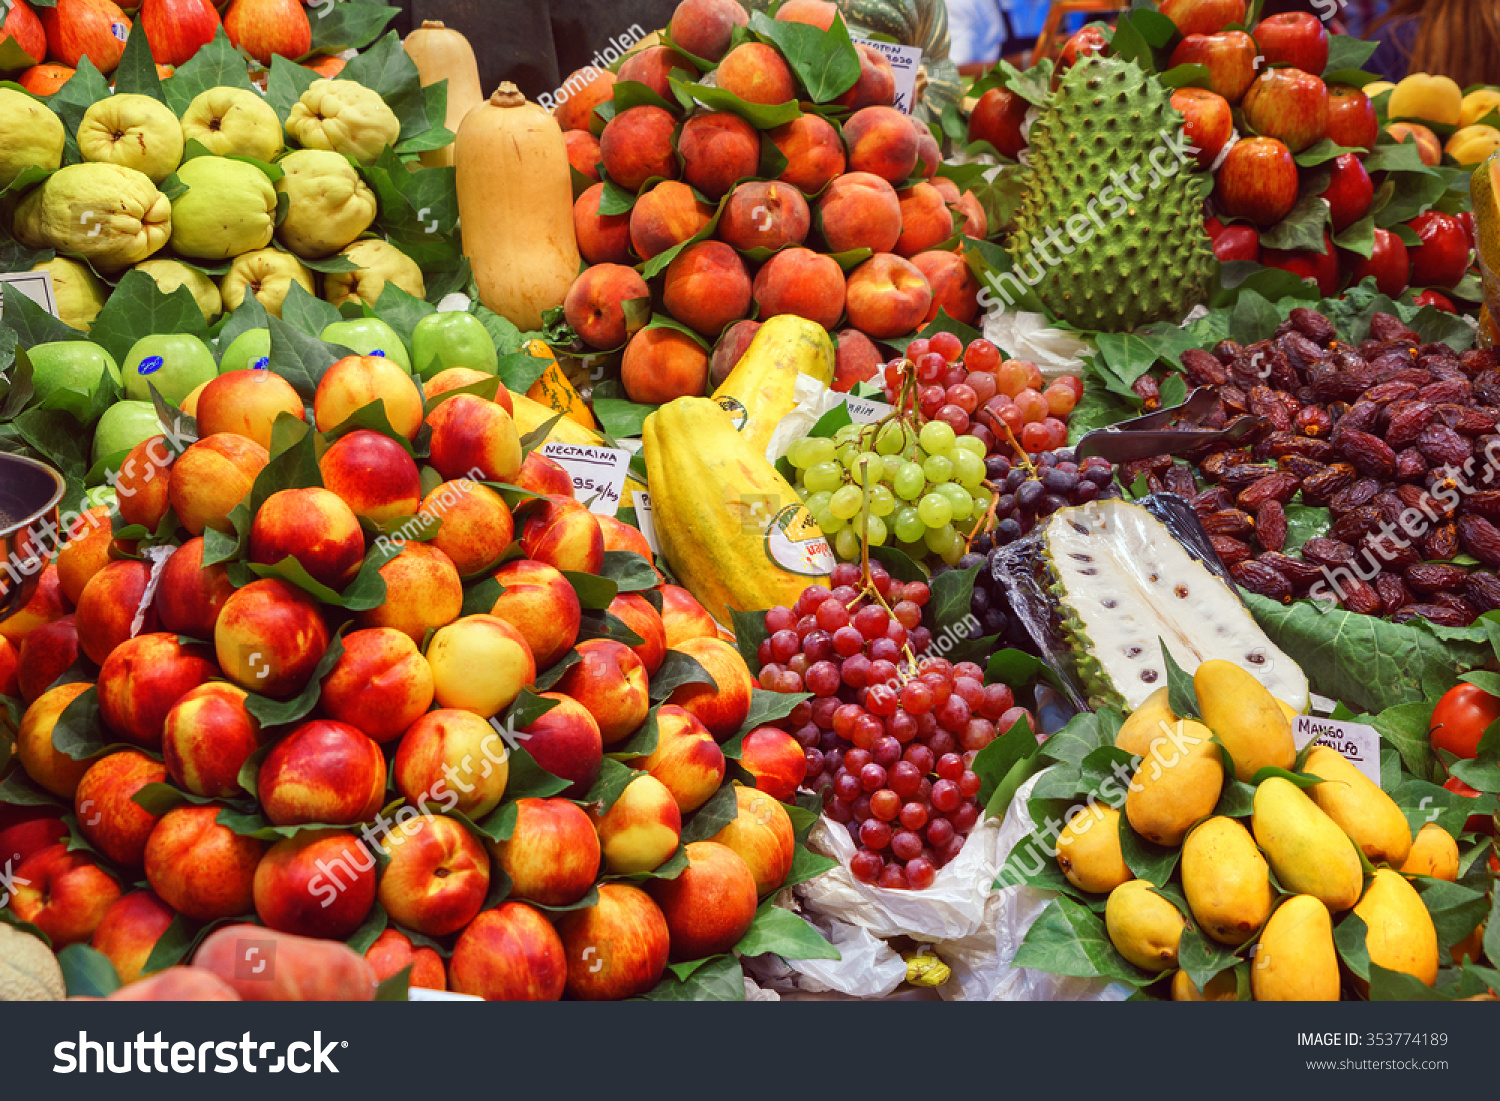 BARCELONA, SPAIN - September 29: Fresh Vegetables and Fruits in market on September 29, 2015 in Barcelona, Spain. Famous La Boqueria market / photography of the variety of fruits at the market. #353774189